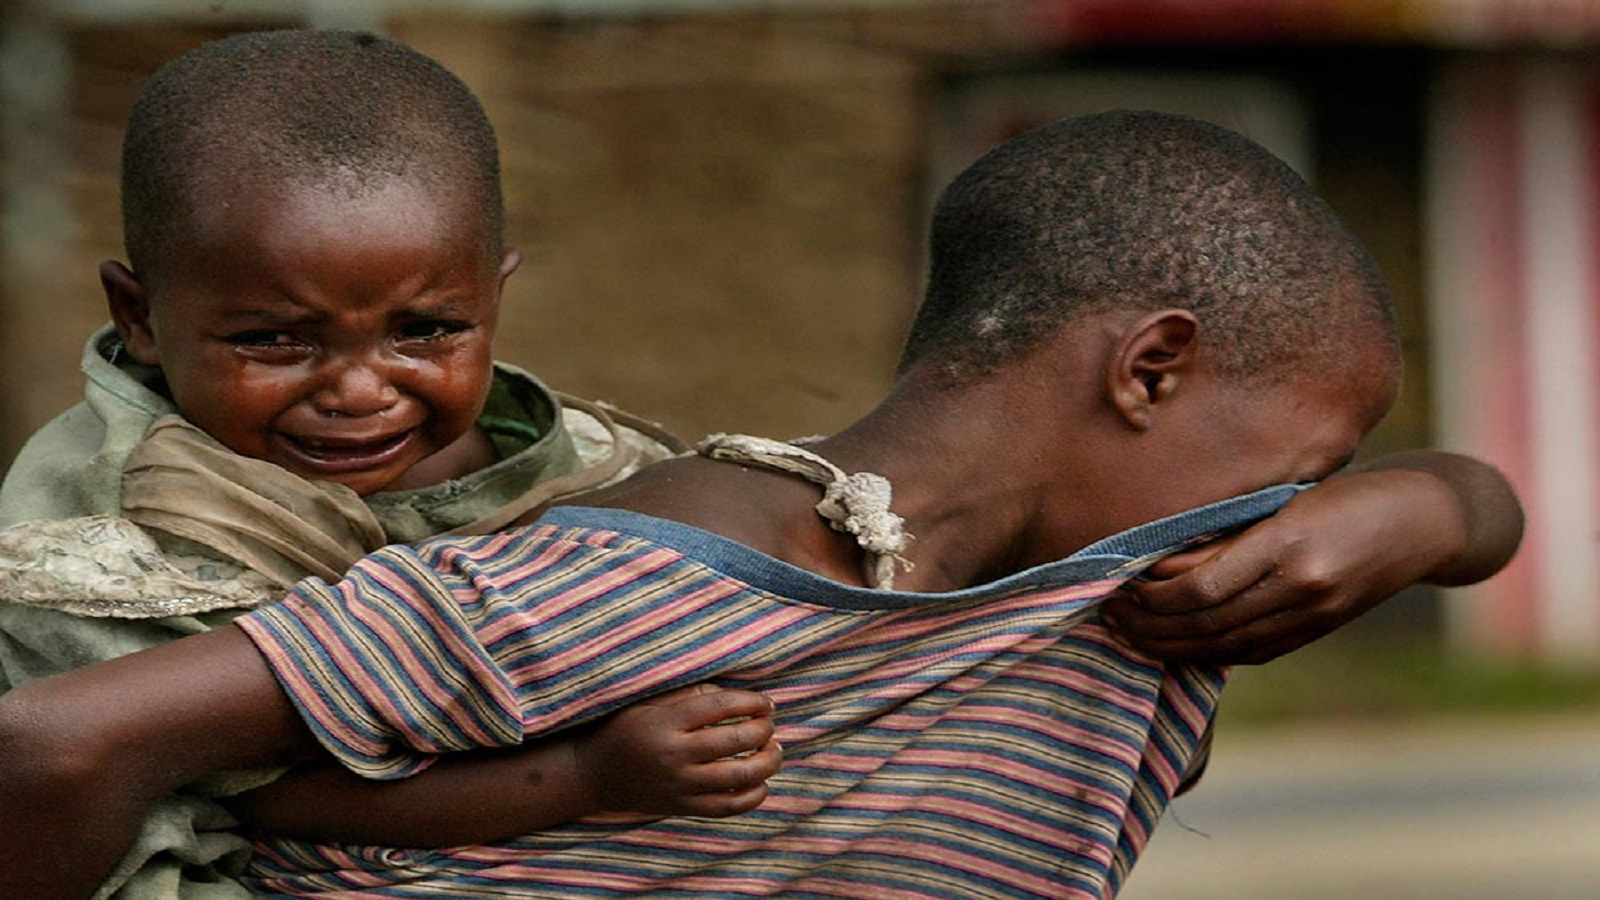 Images and Places, Pictures and Info: ugandan children crying |Crying African Children